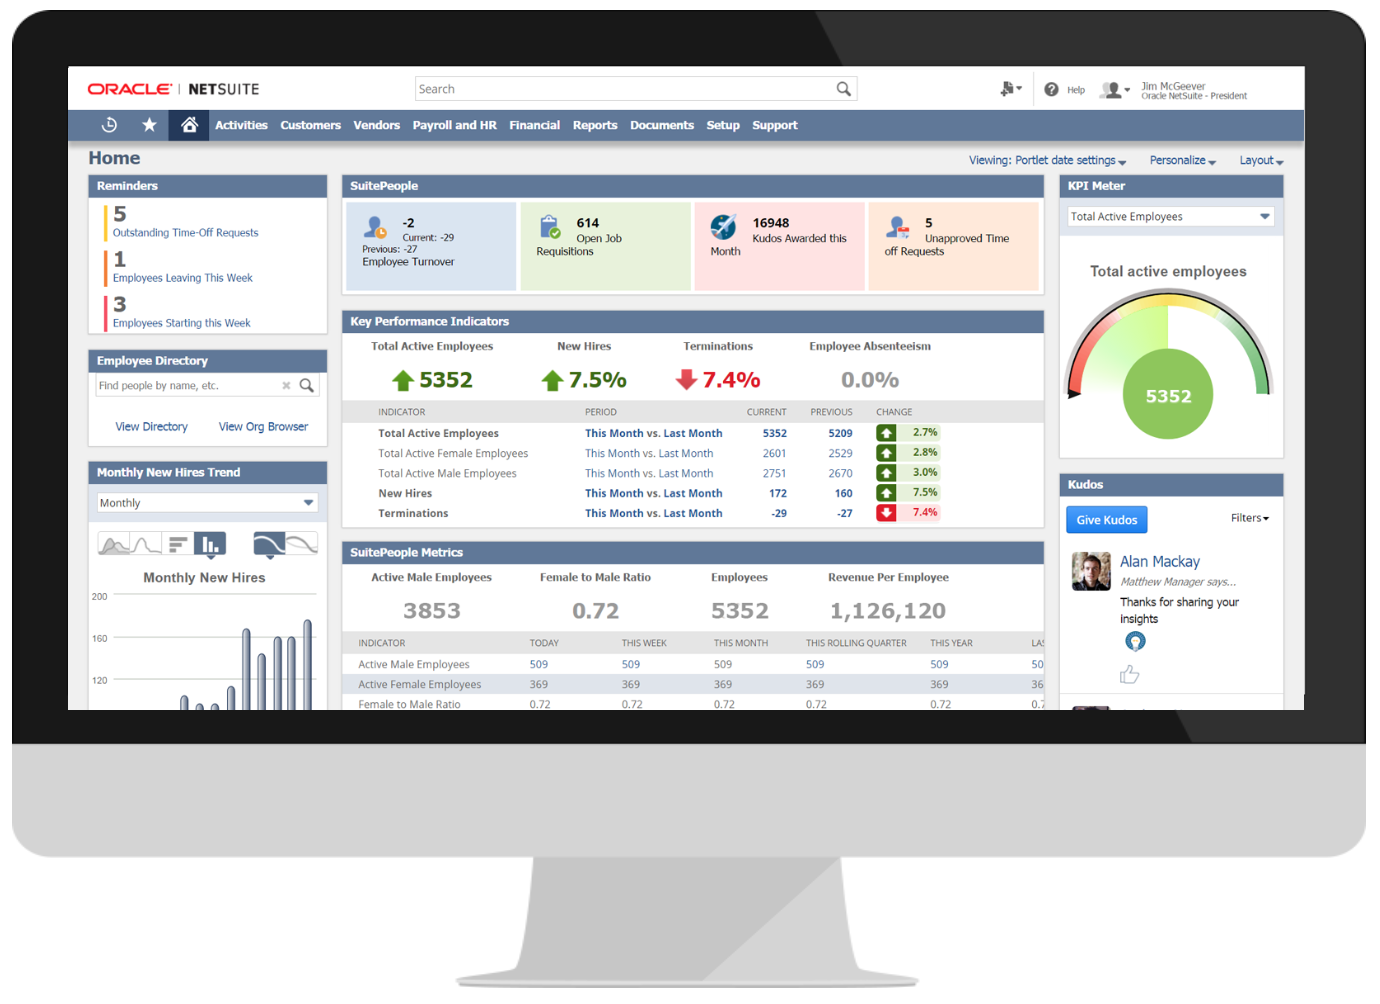 NetSuite's dashboard is user friendly and intuitive.